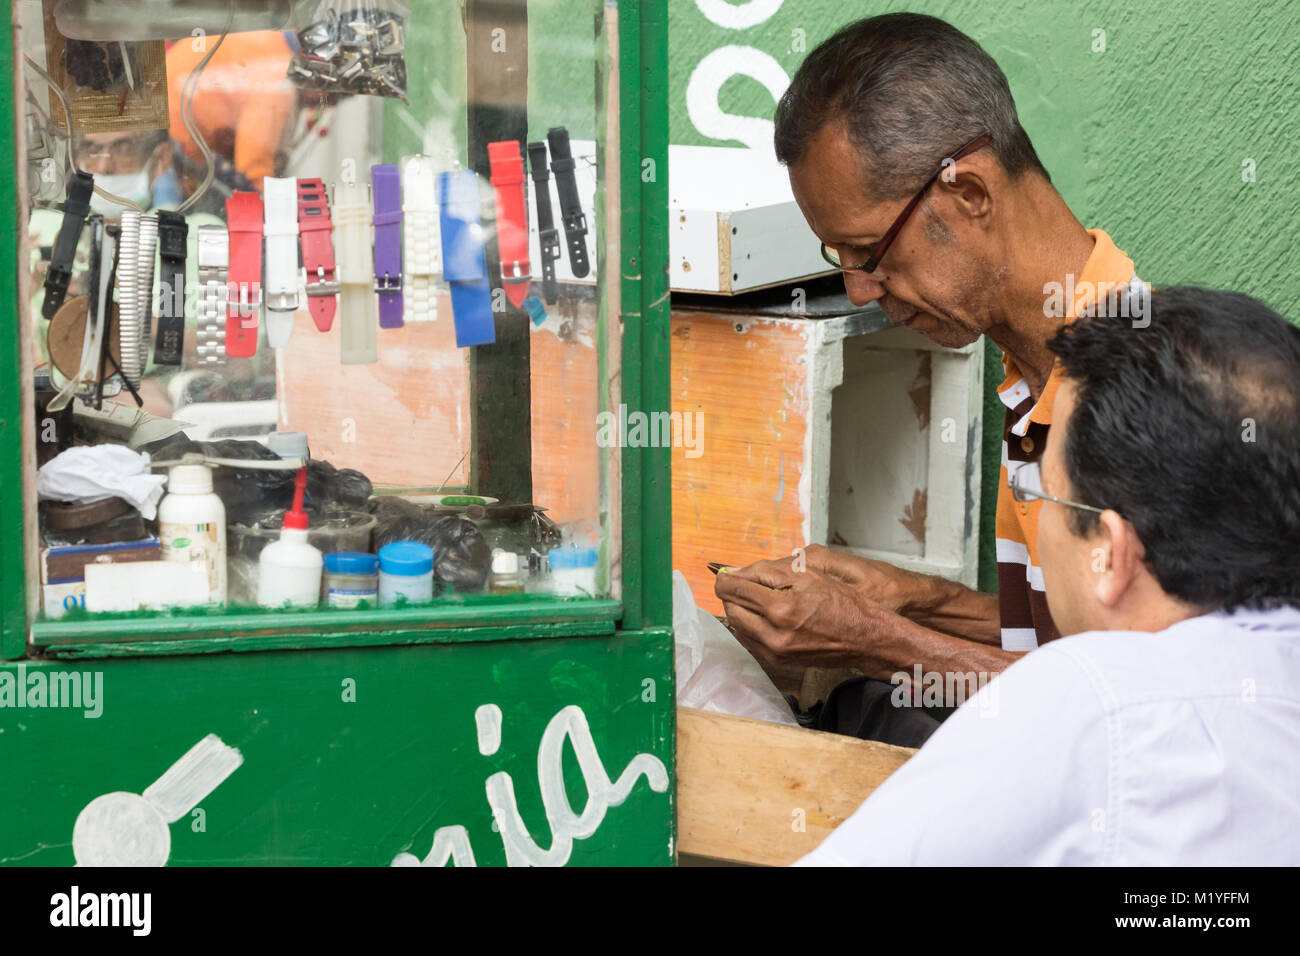 Cartagena, Colombia - January 24th, 2018: Portrait of a male watchmaker reparing a watch at the Parque de las Flores - Stock Image